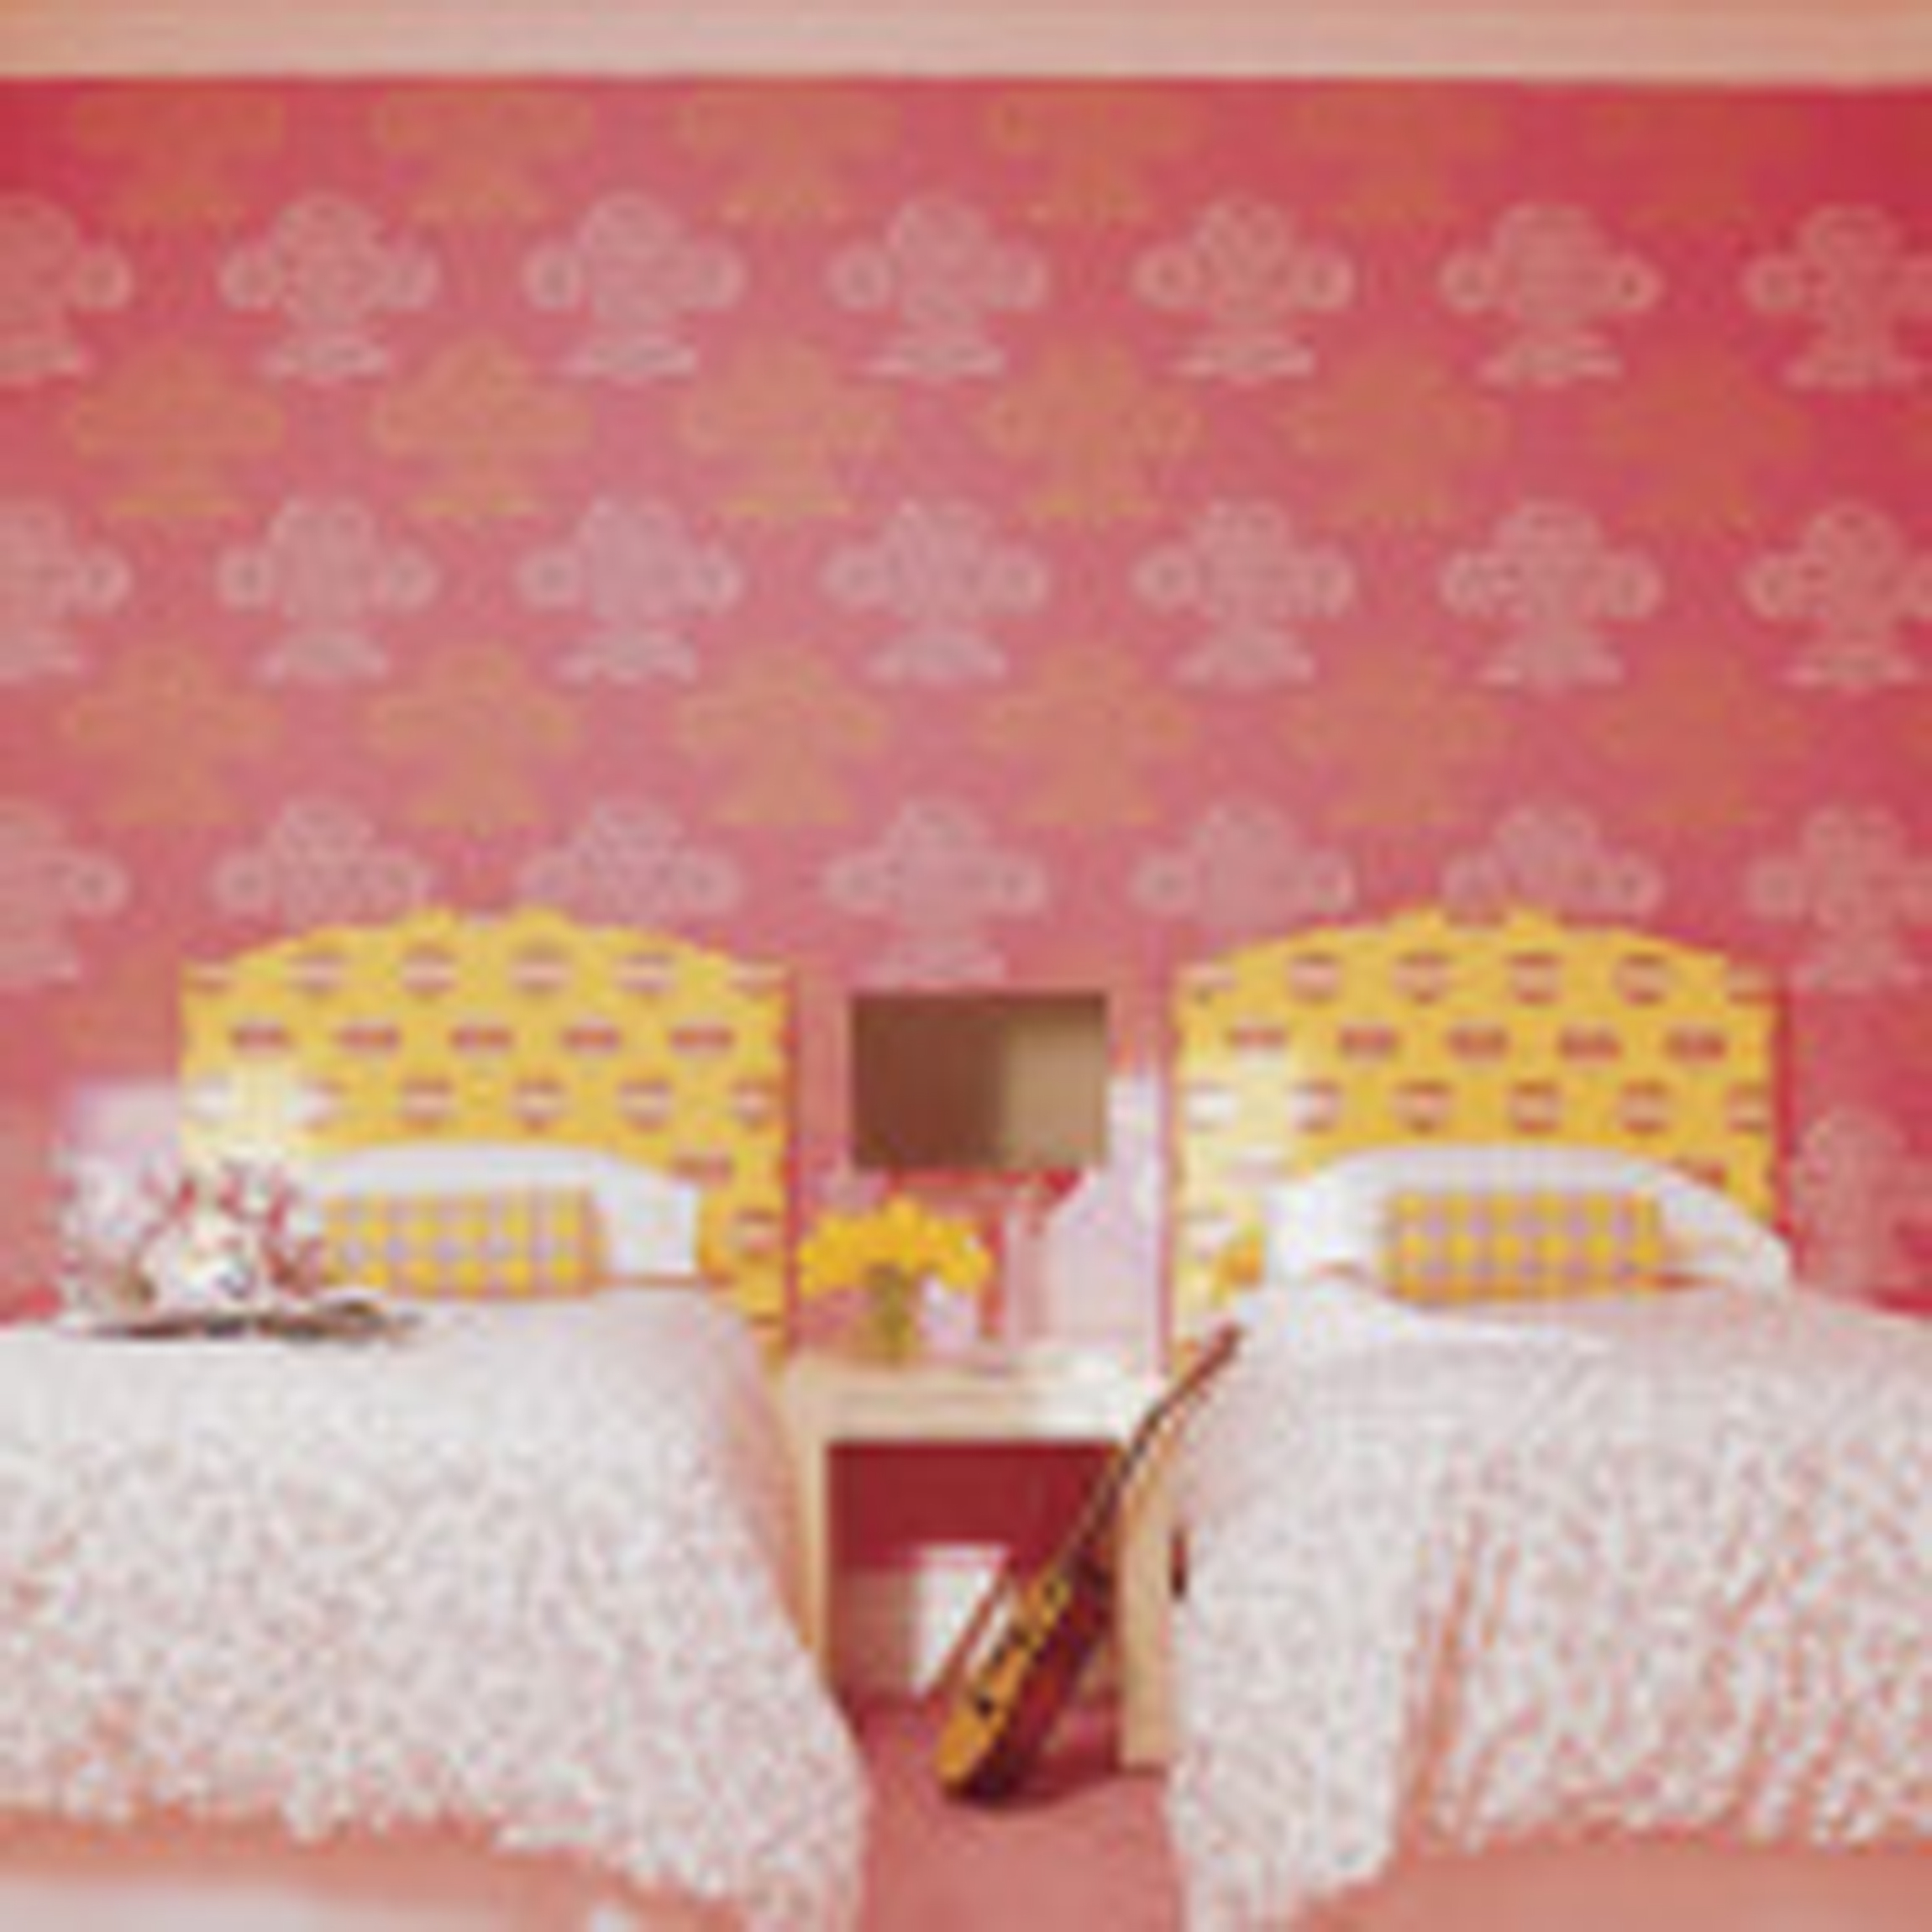 Kids Bedroom Design With Sweet Twin Bed Kids And Beautiful Pink Motif Wallpaper Fancy Fun Furnish And Decoration For Kid Bedroom Design Ideas Kid Bedroom Furniture Kid Beds (View 1 of 28)